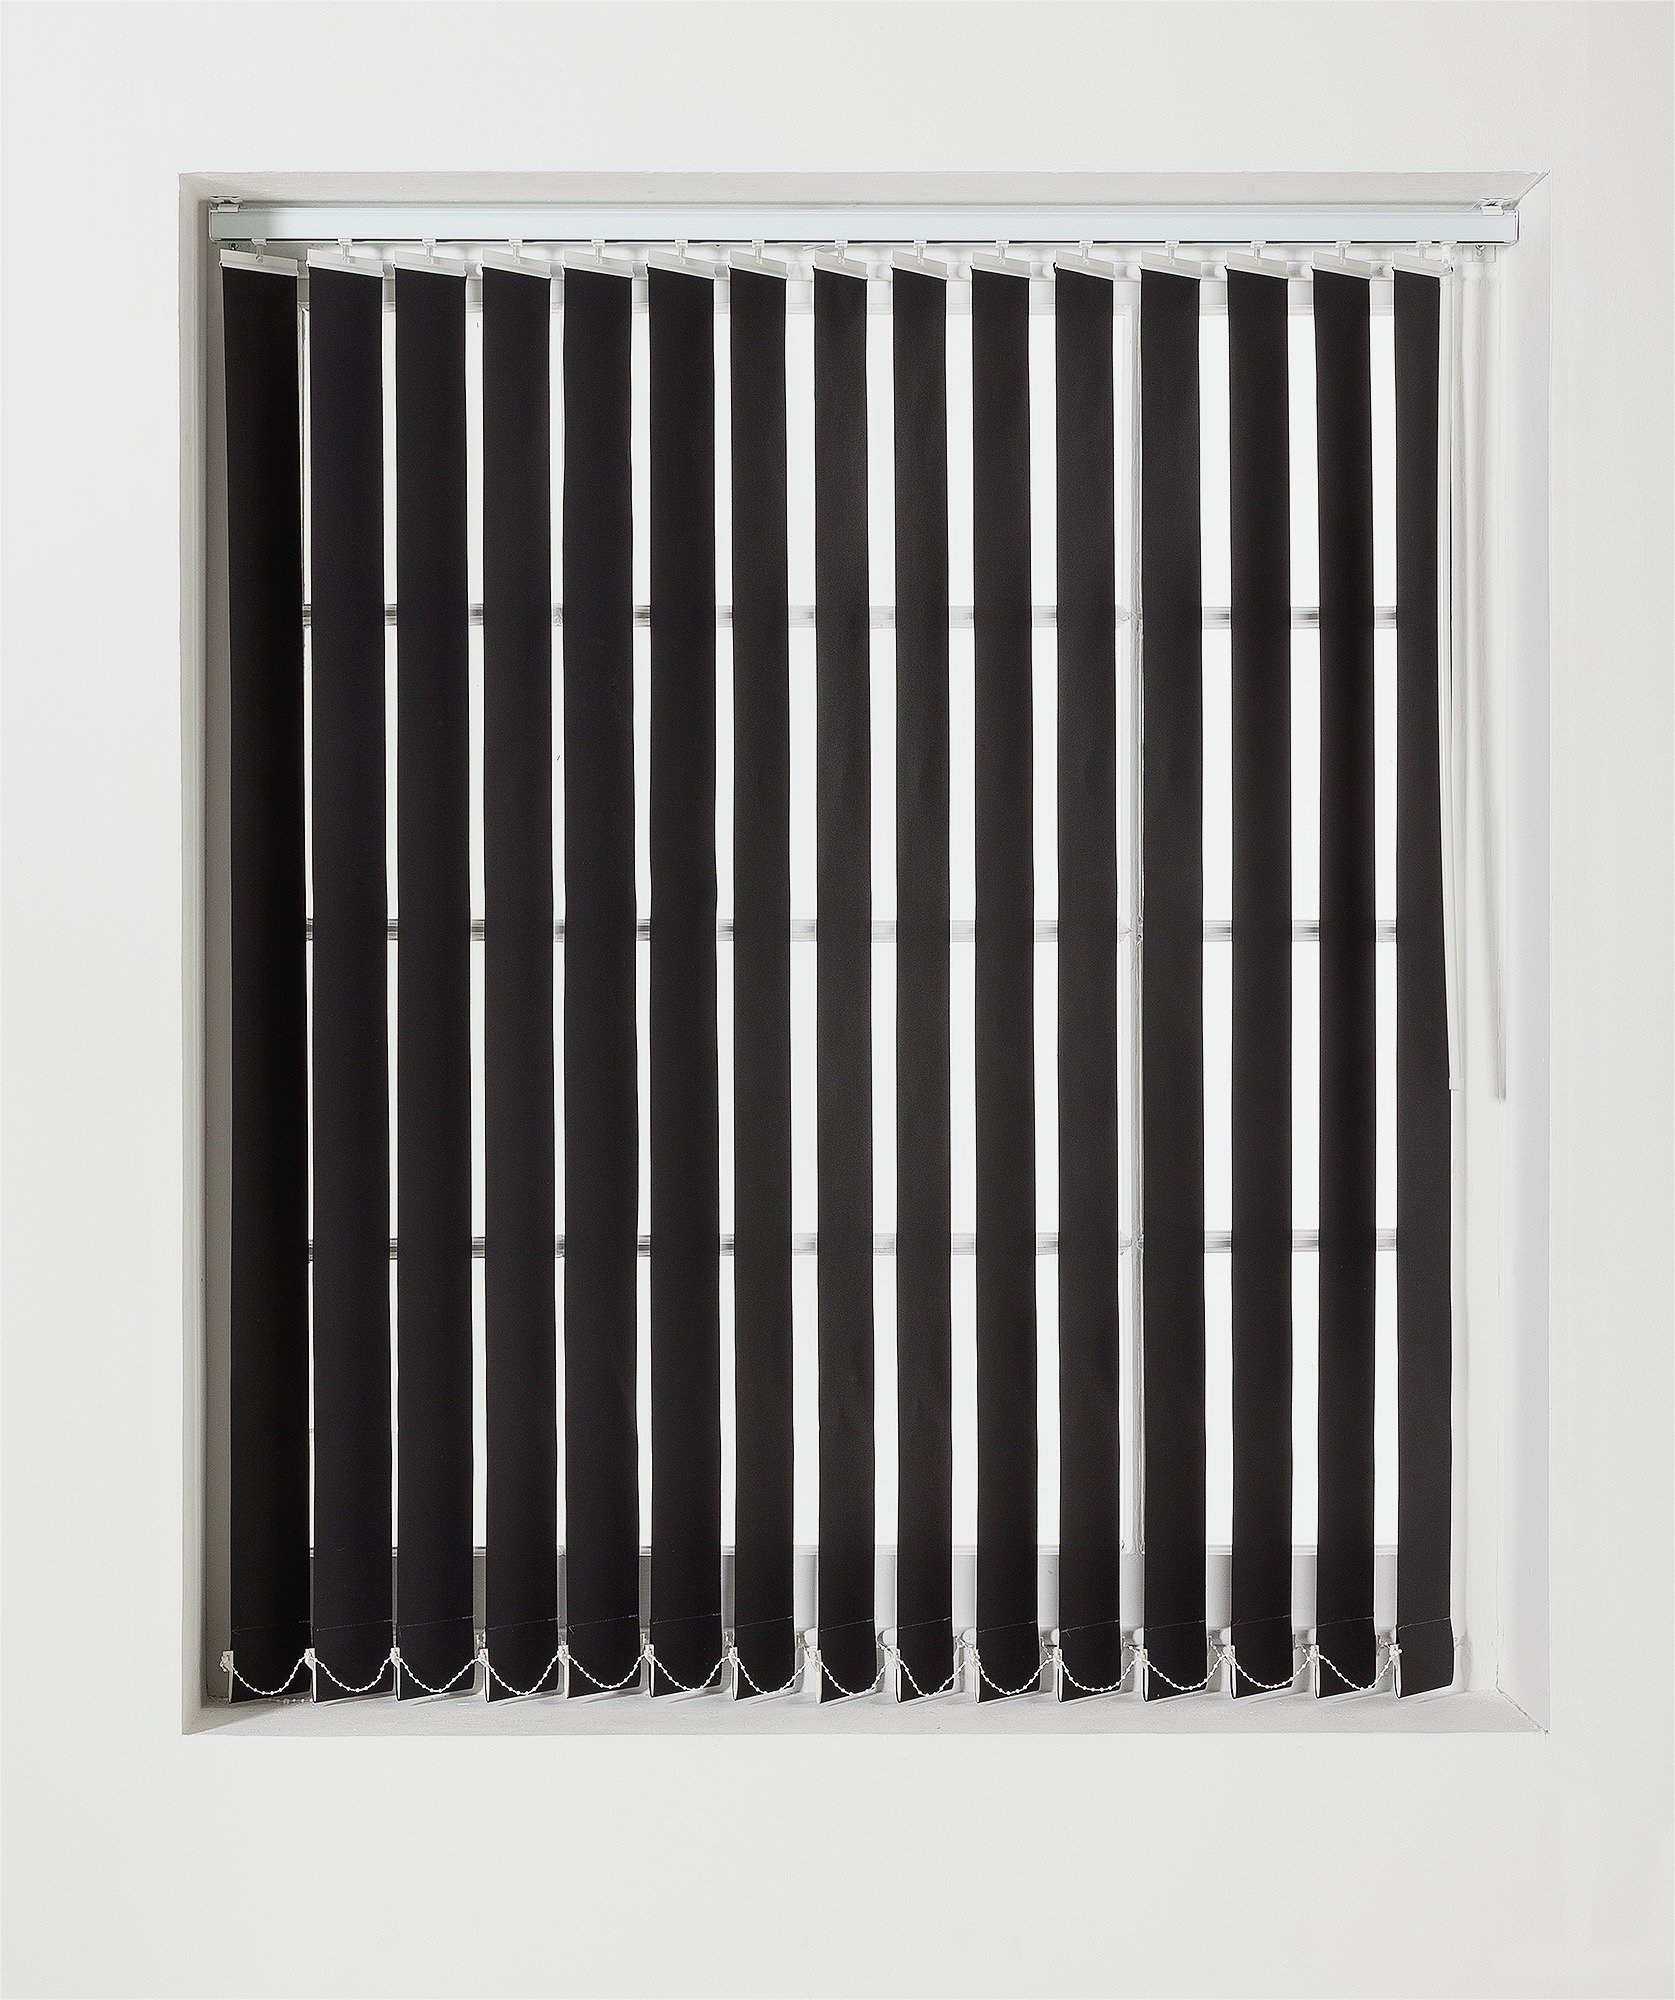 Buy Argos Home Vertical Blinds Slat Pack Black Daylight Blinds